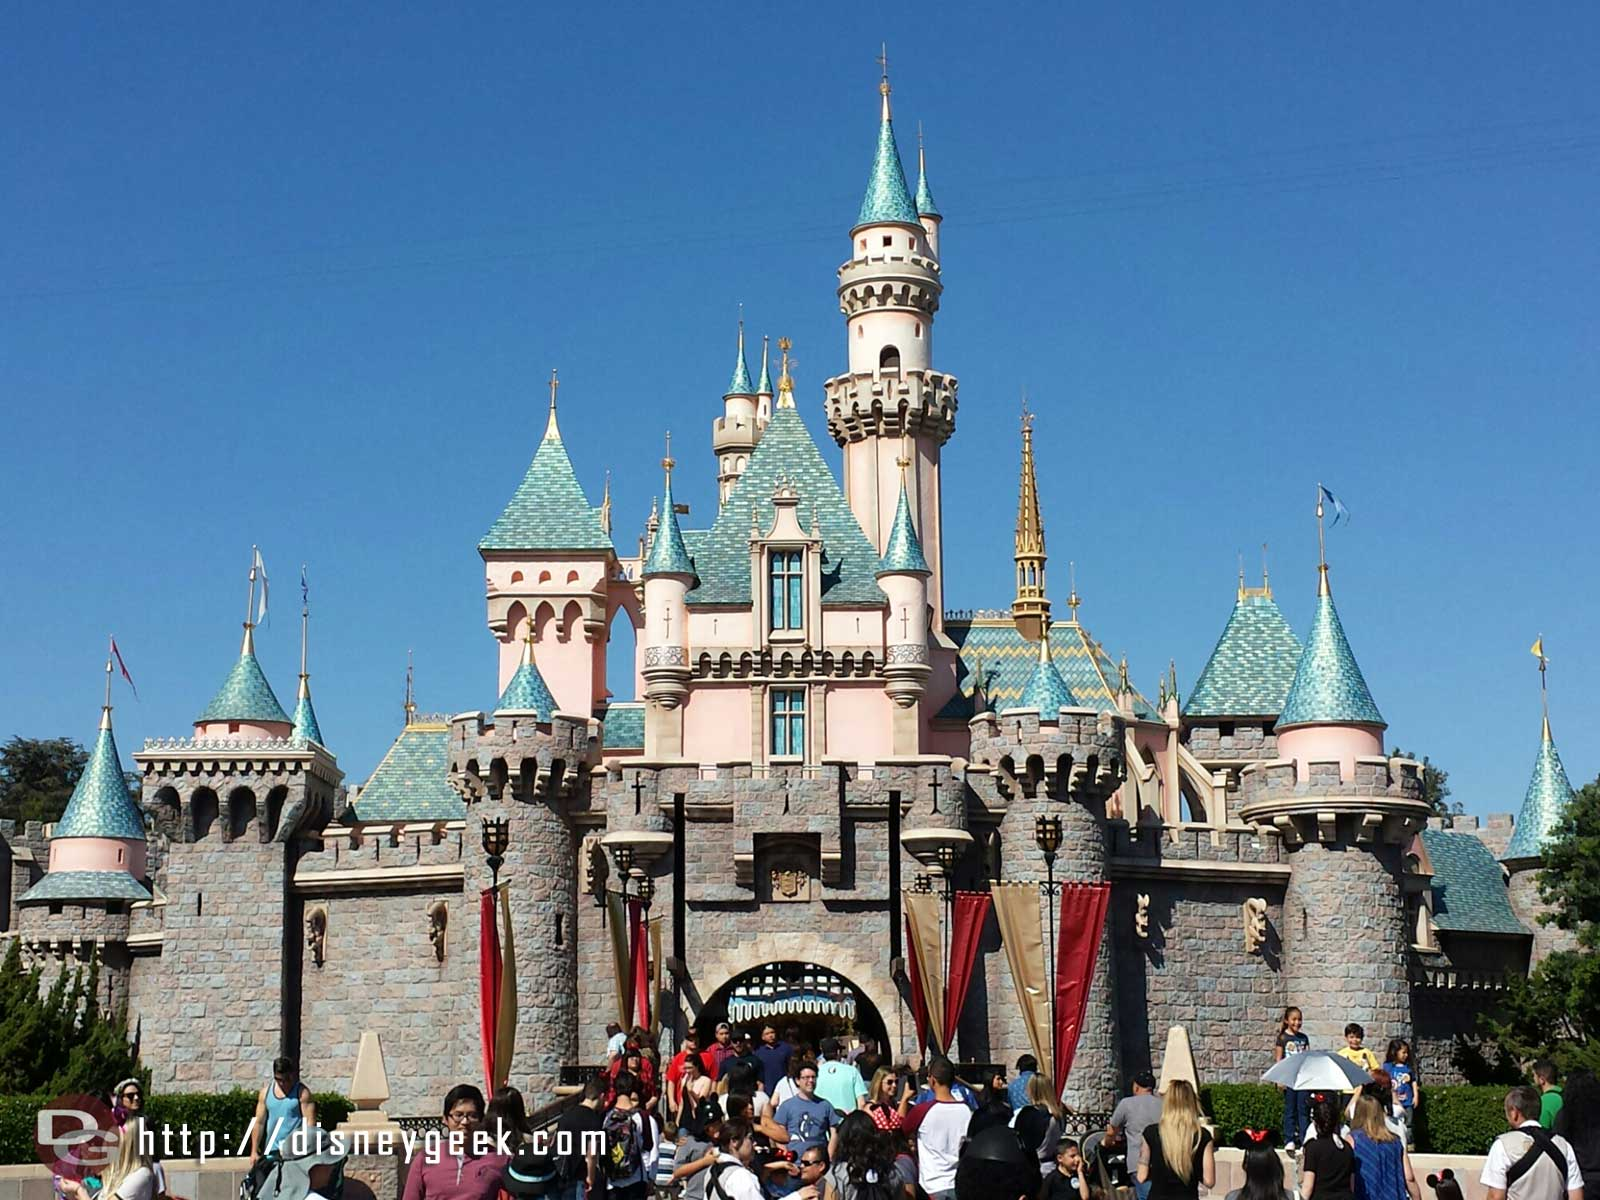 Sleeping Beauty Castle has emerged from the scaffolding since my last visit #Disneyland